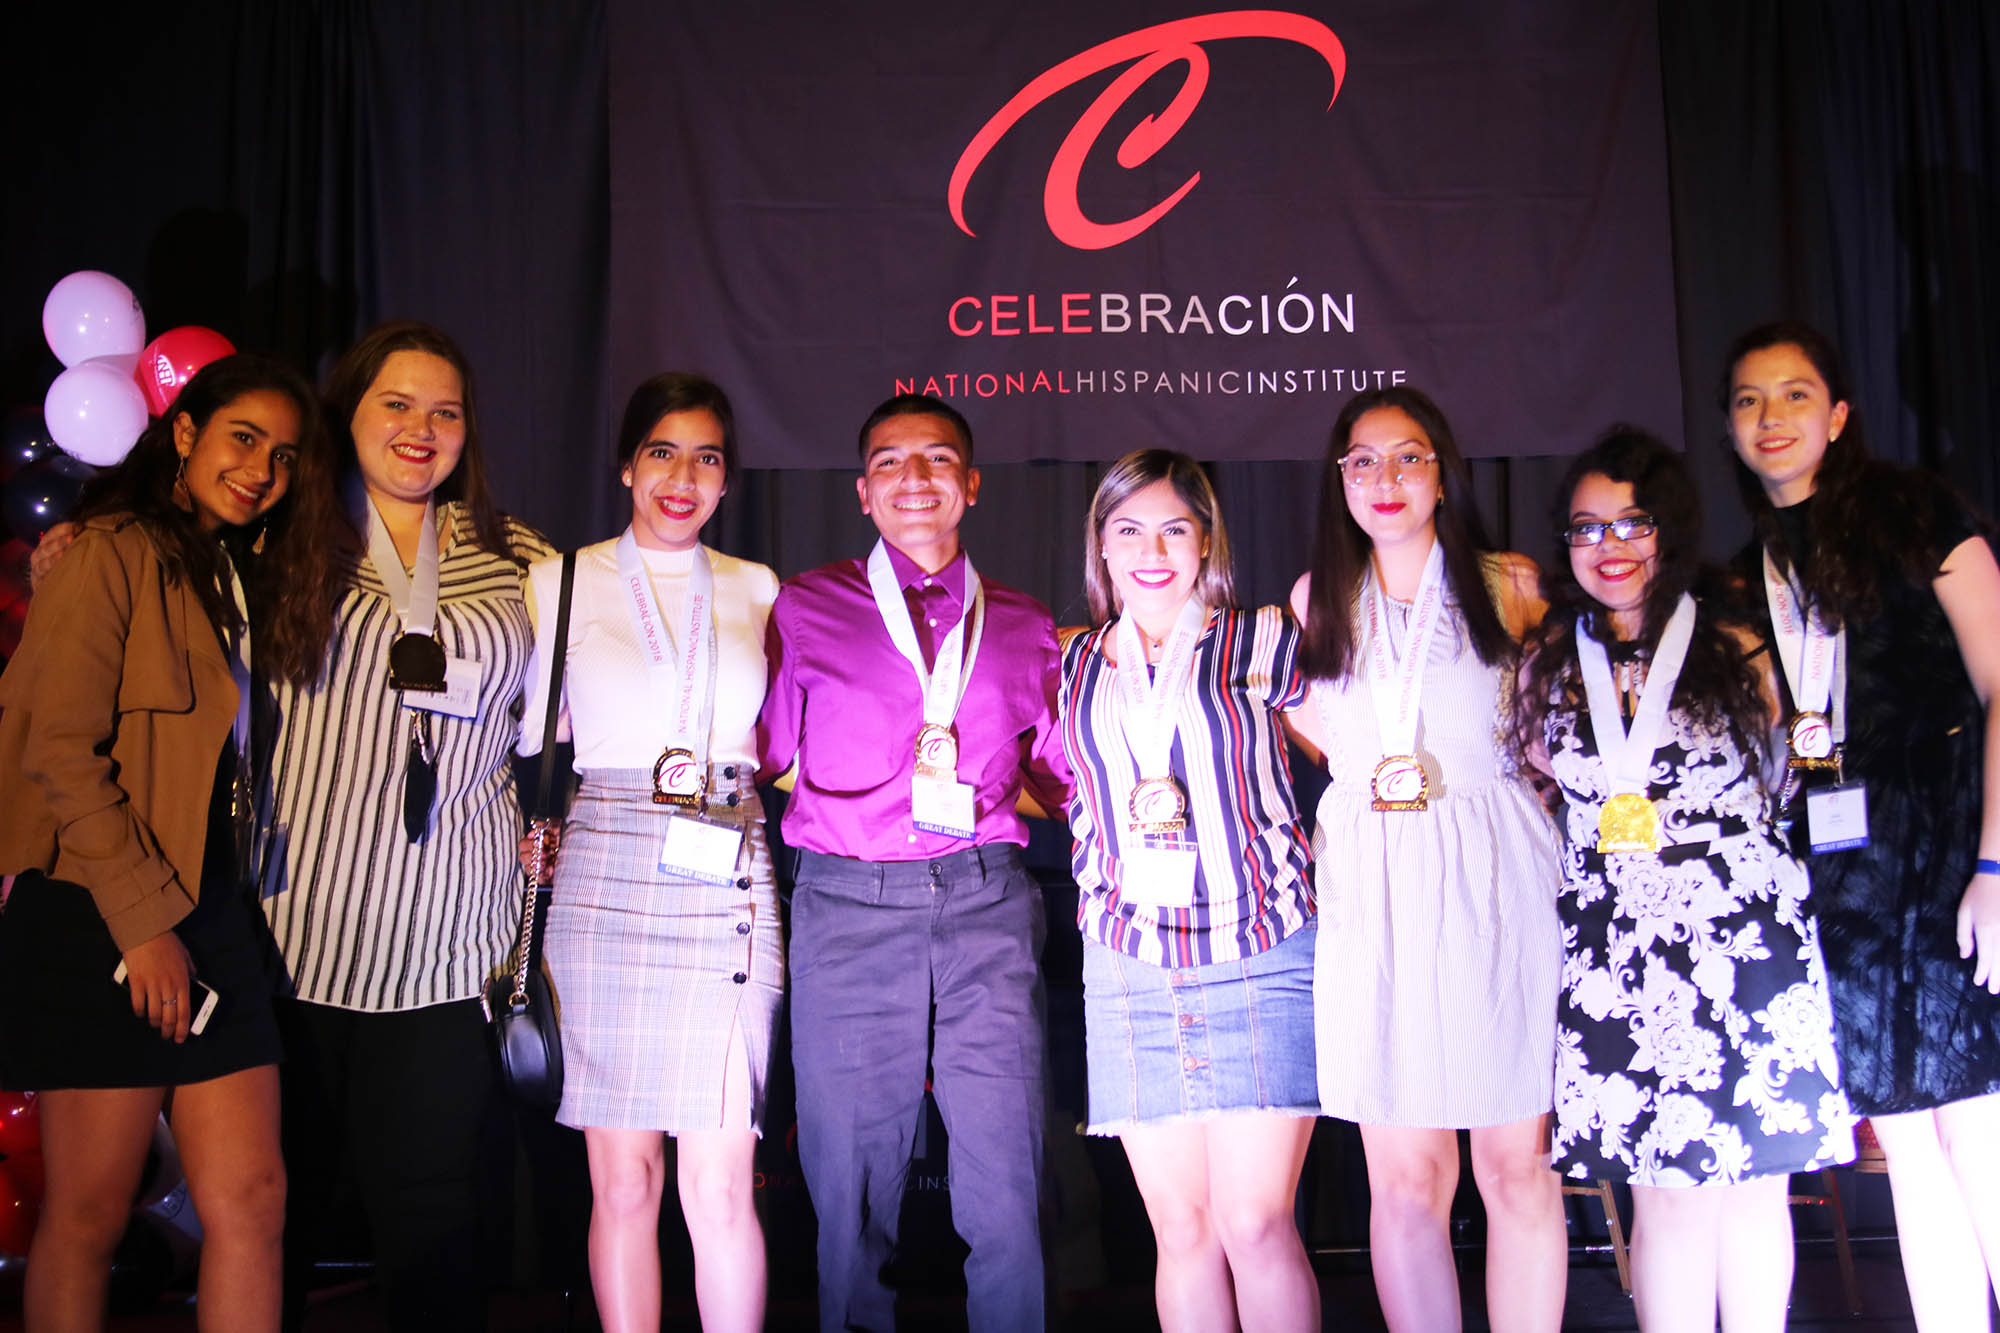 La Revolucion, first place Great Debate cohort team at the 2018 Celebracion event.